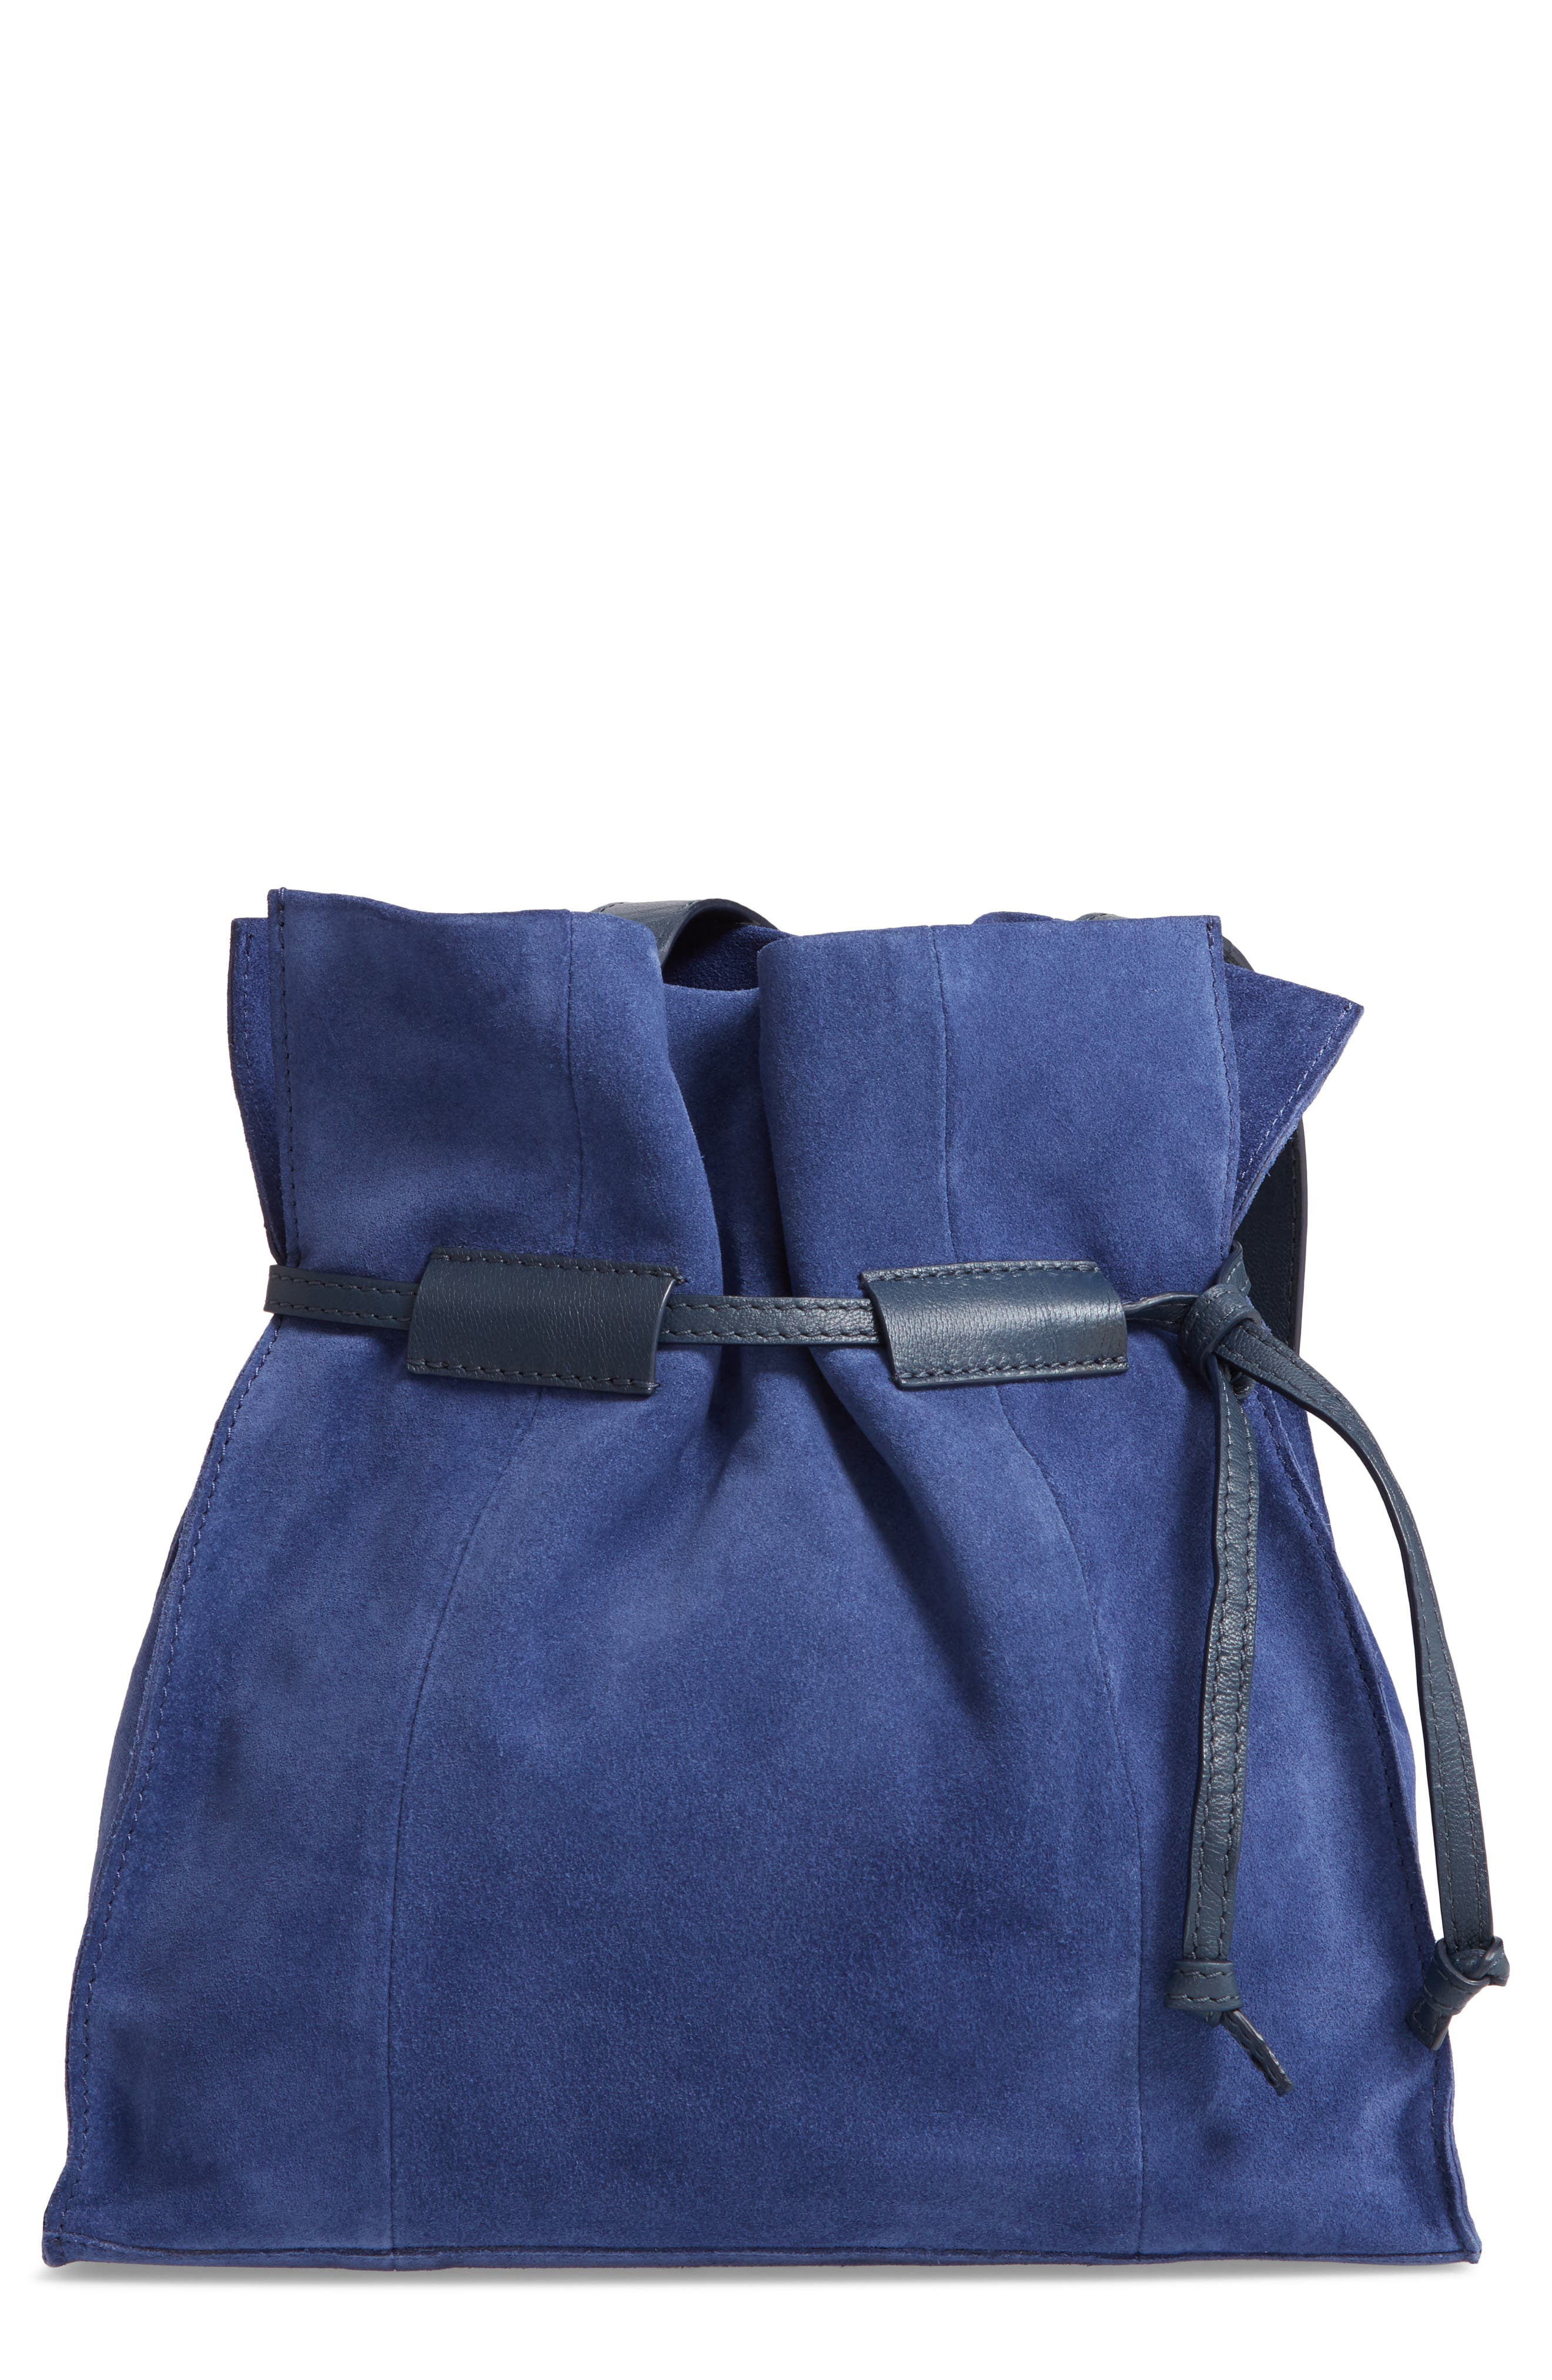 Pull String Faux Leather Bucket Bag,                             Main thumbnail 1, color,                             400